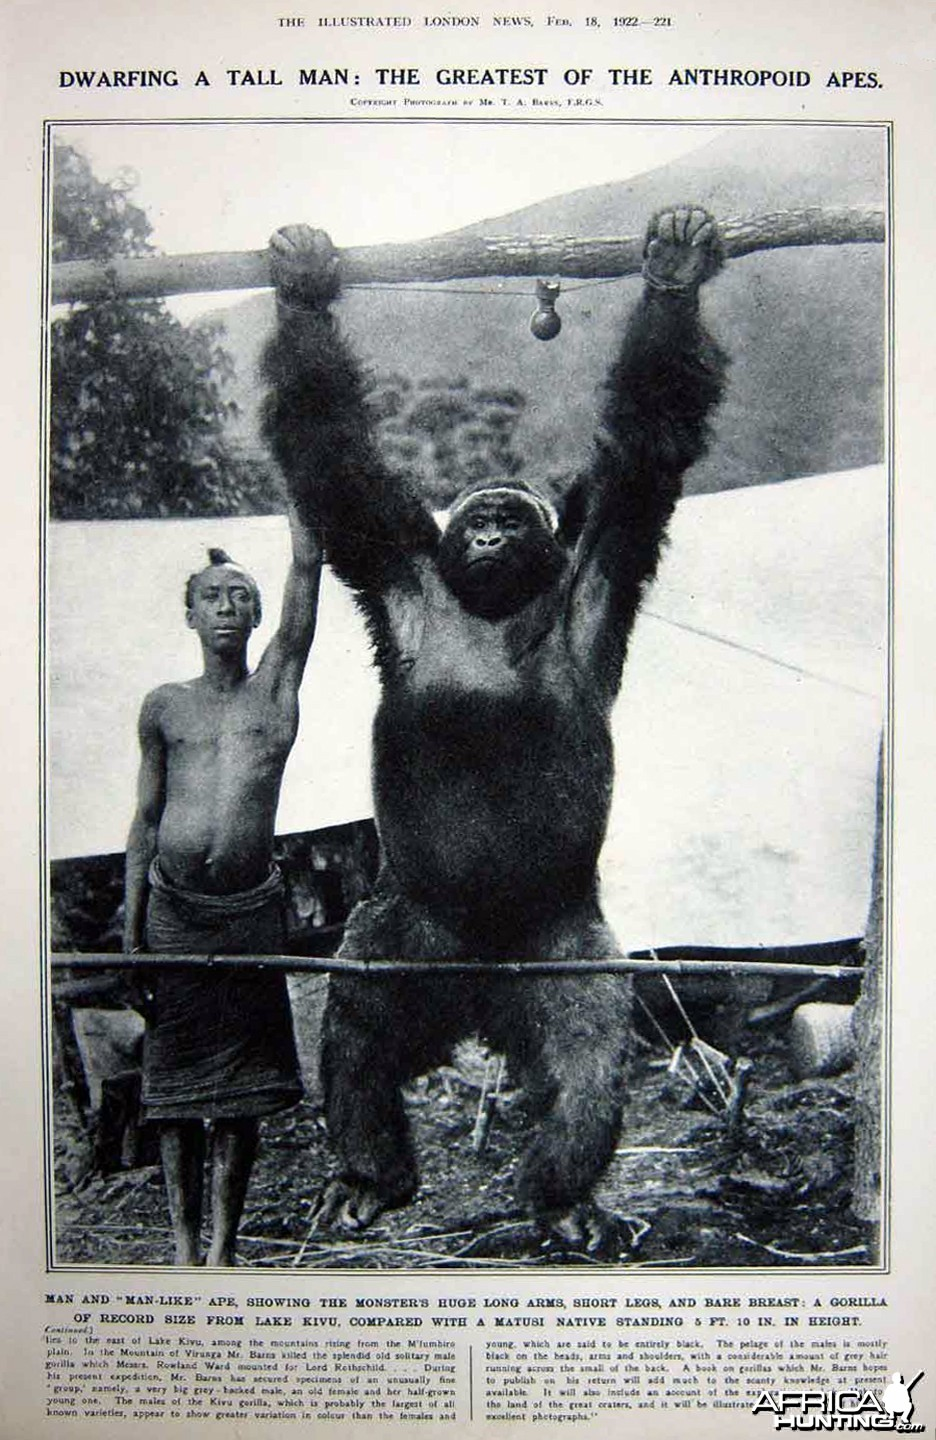 Dwarfing a Tall Man: The Greatest of the Anthropoid Apes